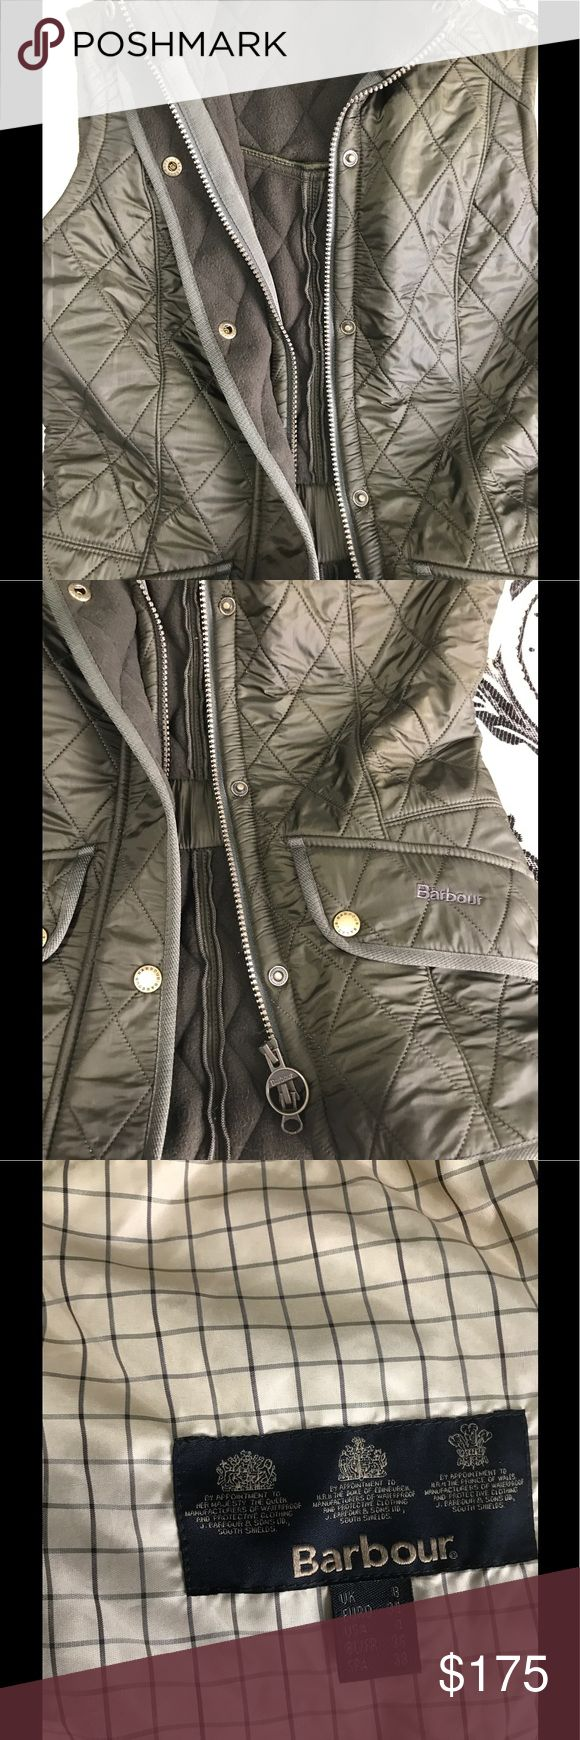 Barbour ladies down vest Brand new. No tags but never worn. As you know their sizing runs small. This is a size 4 and it fits with a sweater. I am usually an S and this will fit a size 0-2. Barbour Jackets & Coats Vests